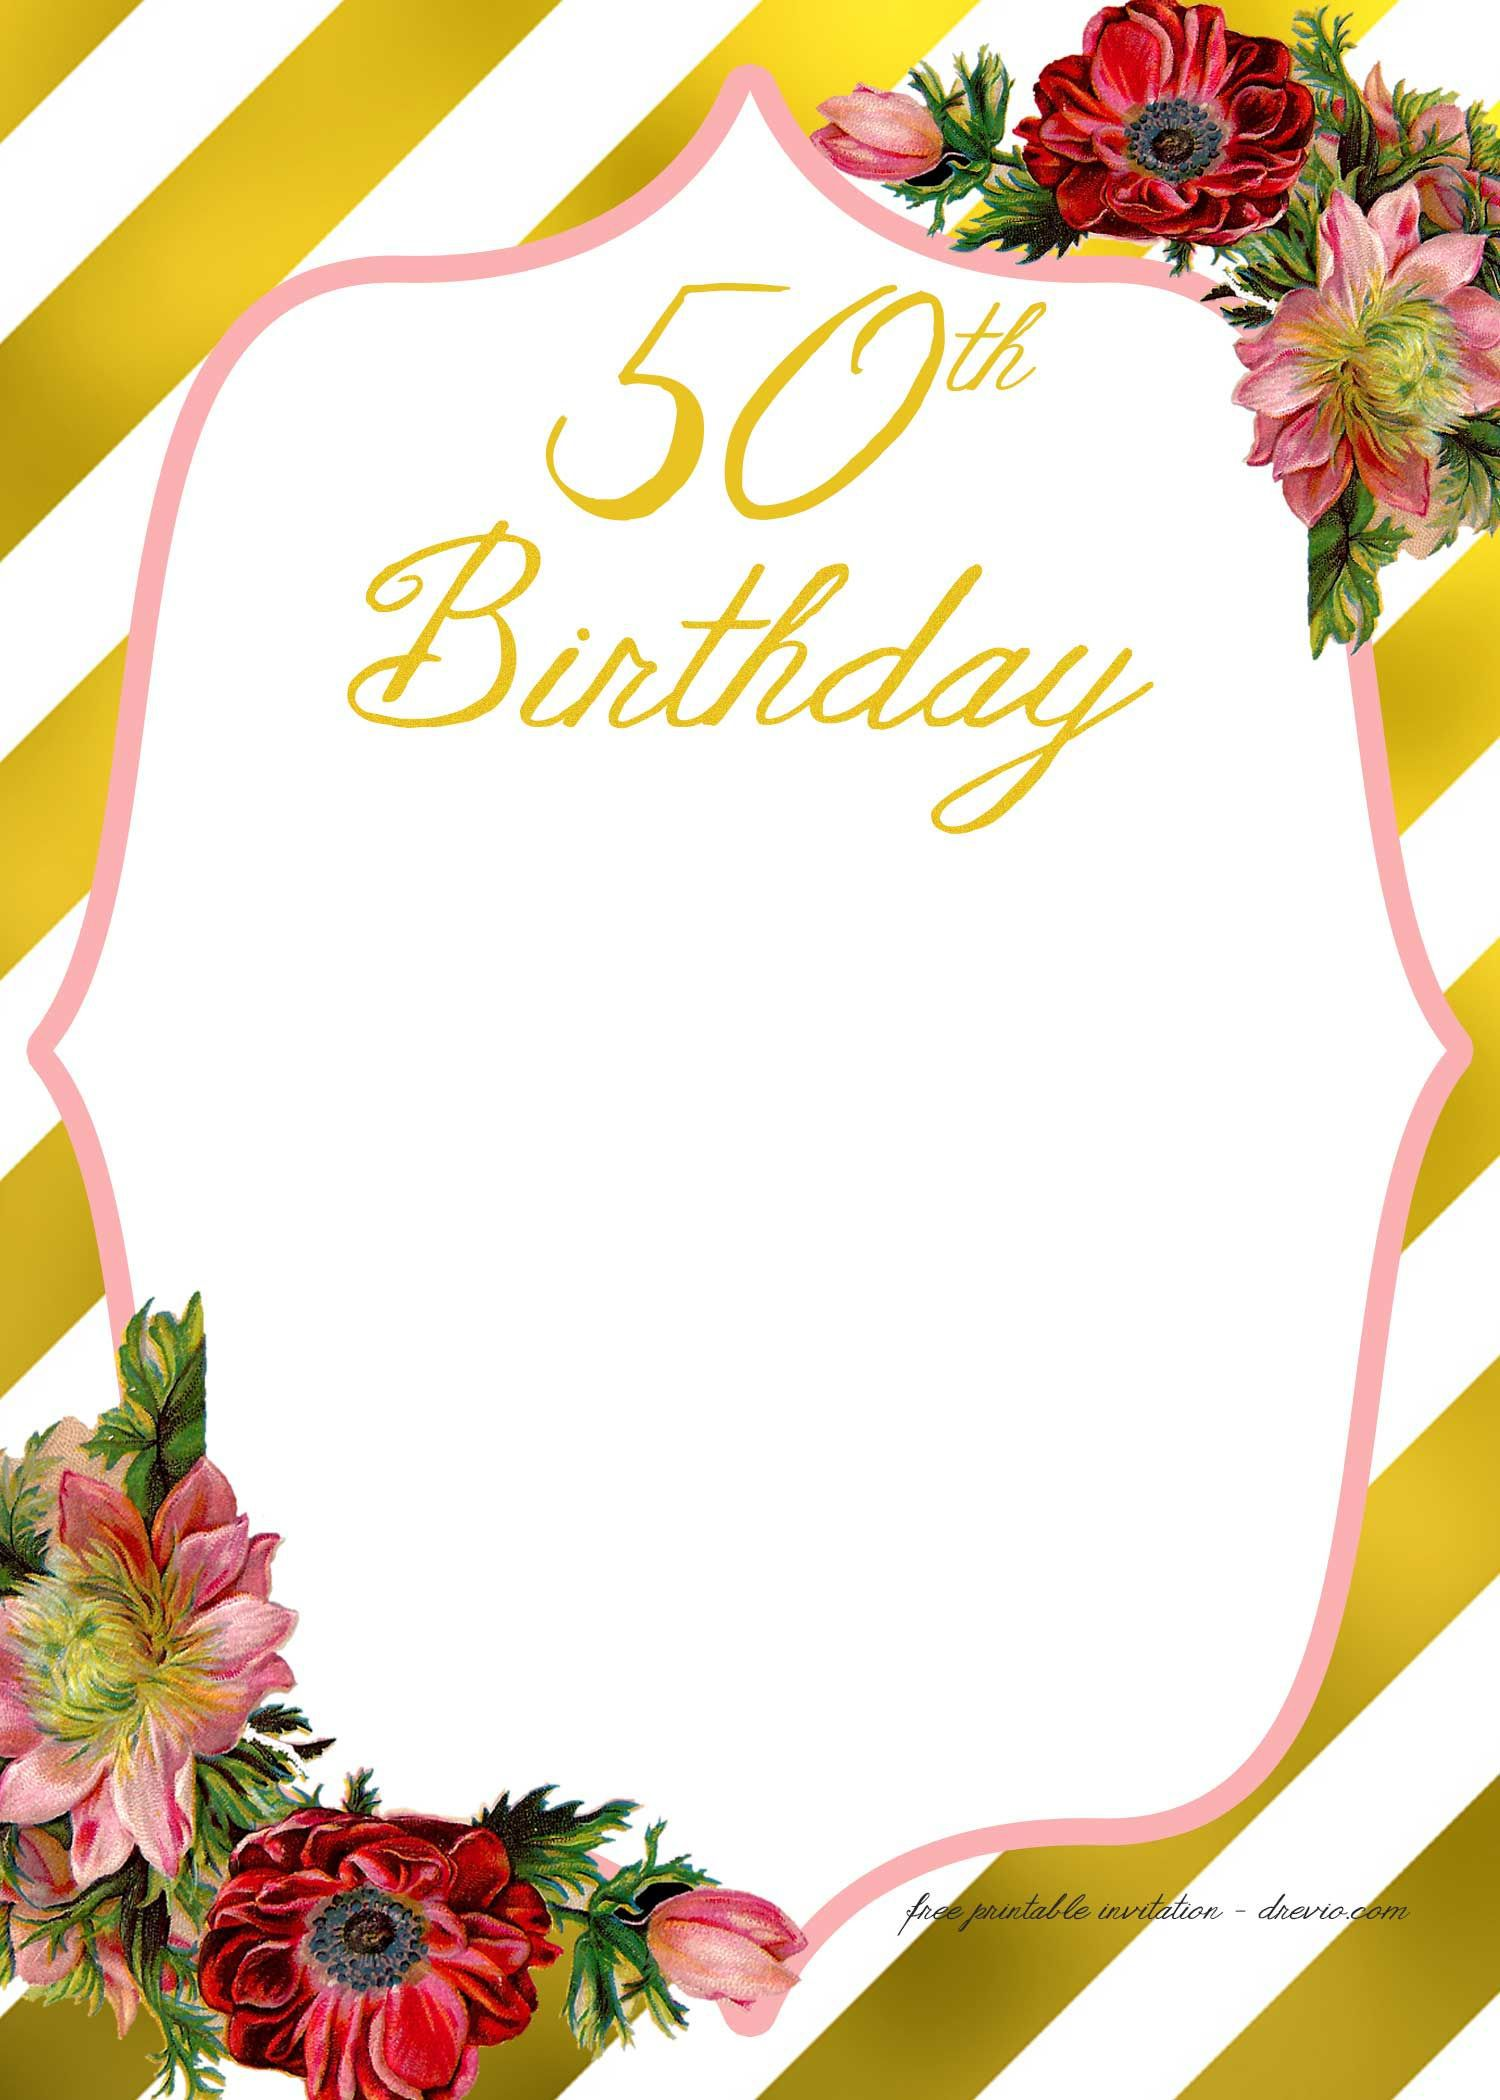 008 Simple 60th Birthday Invitation Template High Resolution  Card Free DownloadFull